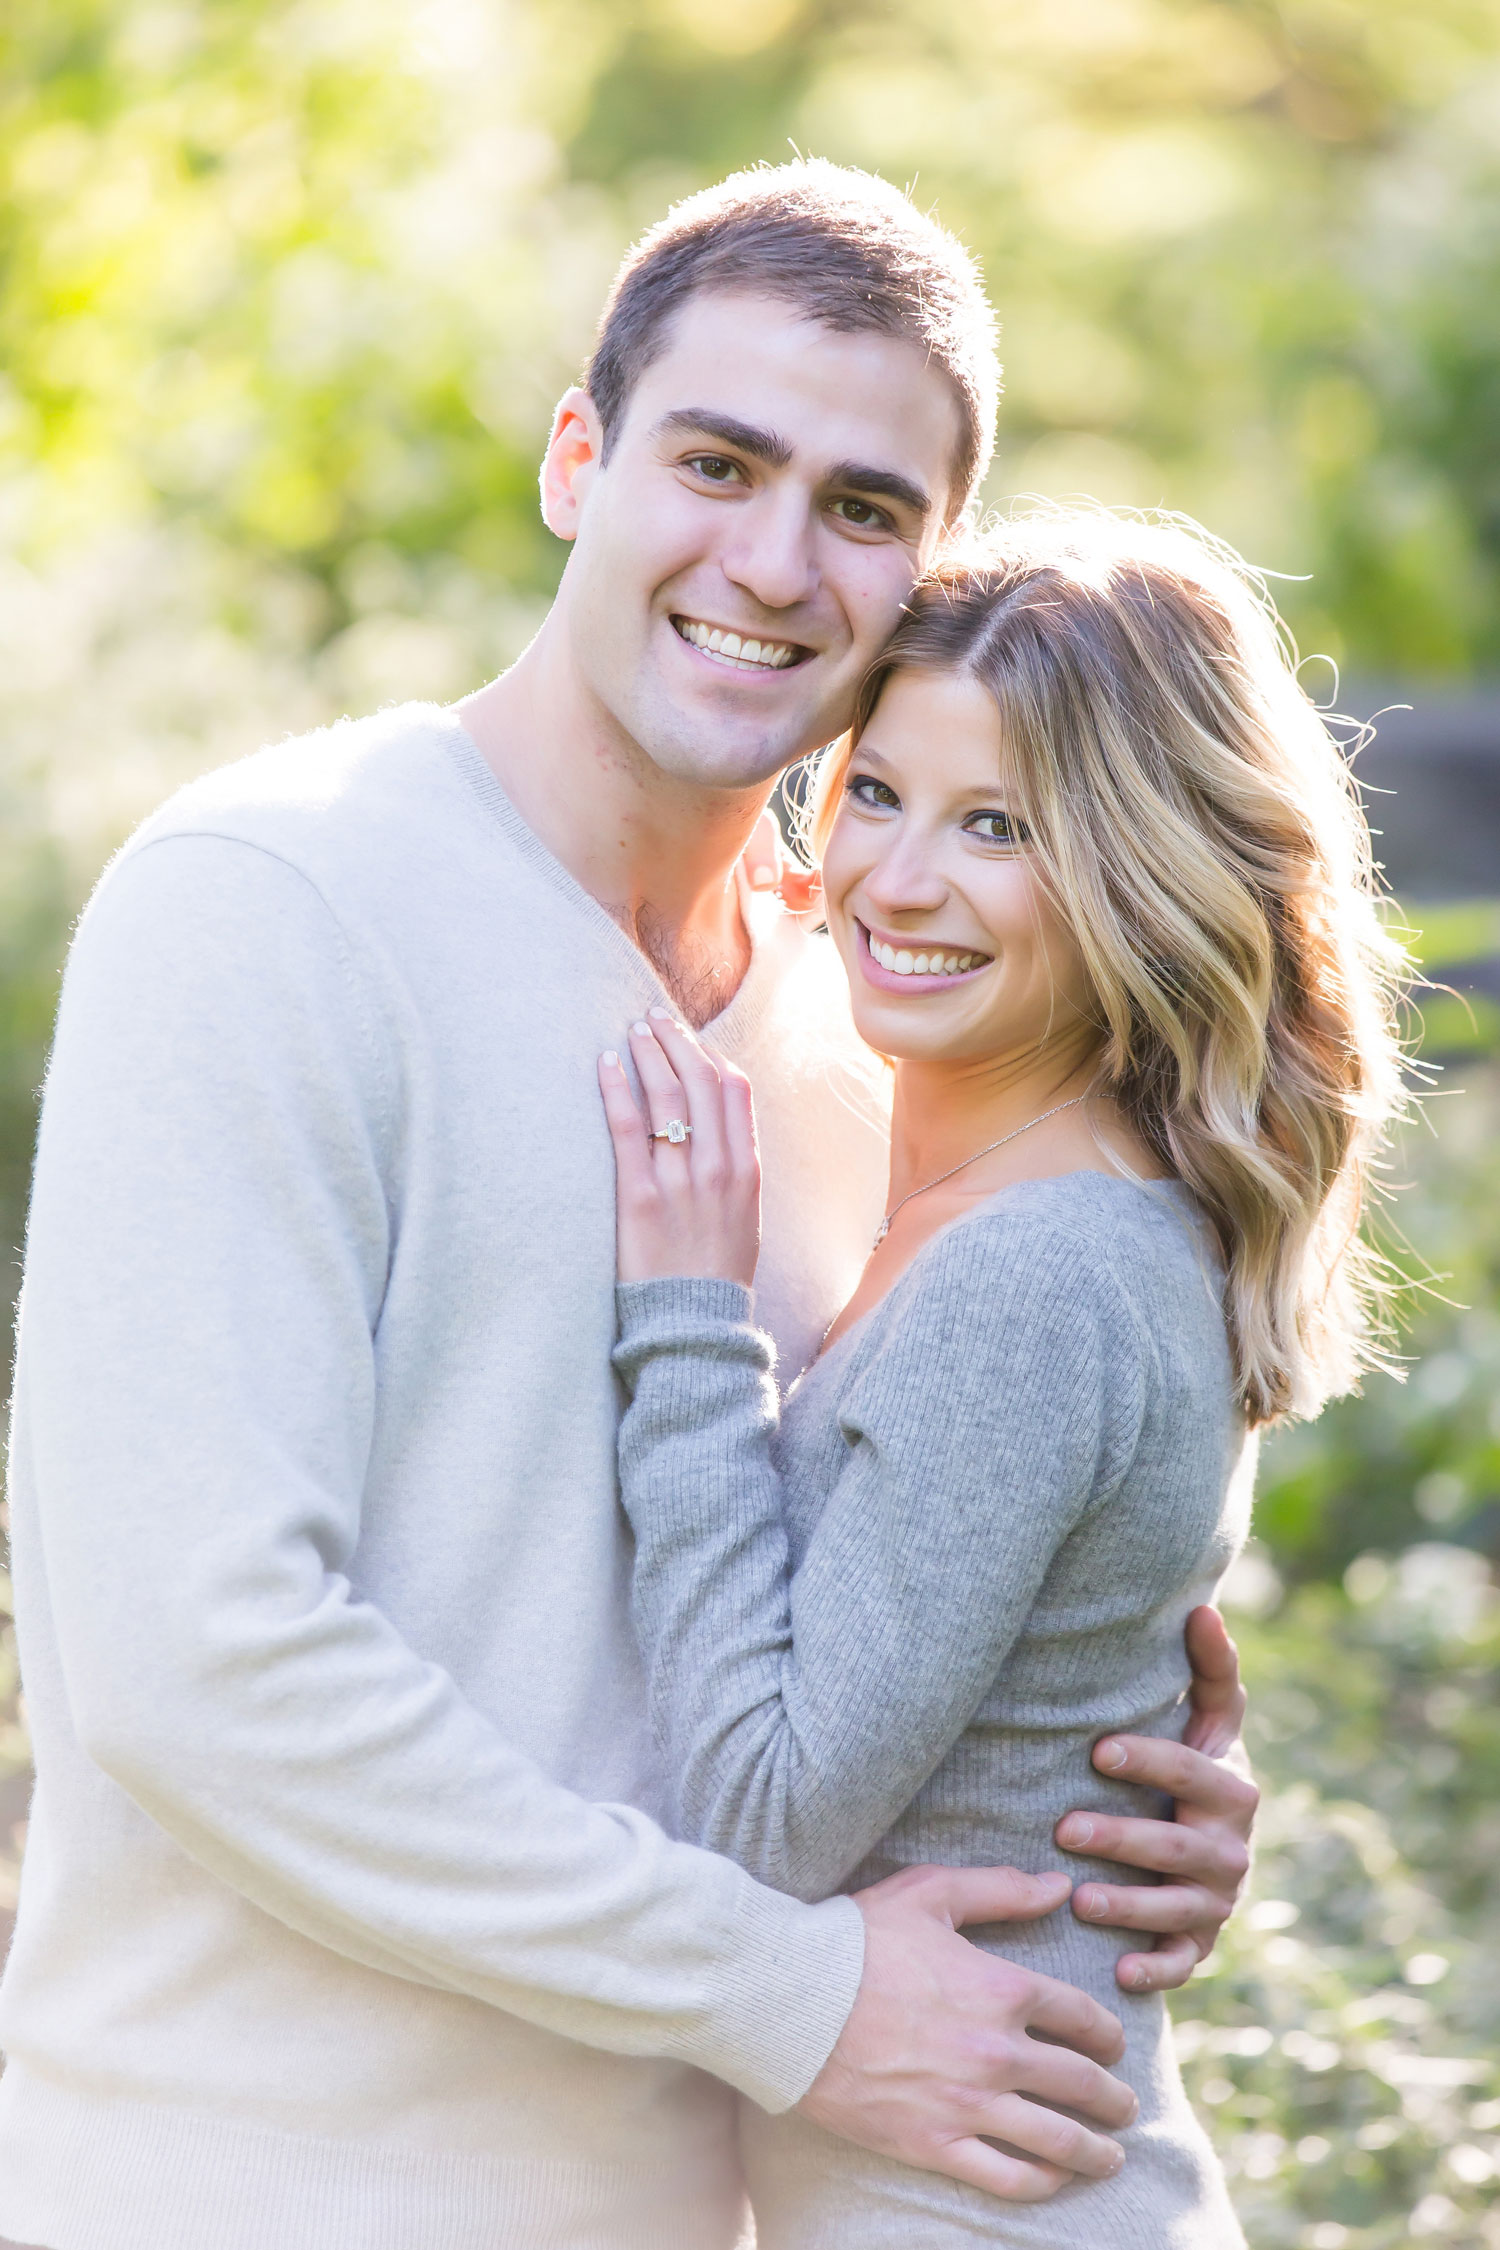 Engagement shoot ideas outfit grey sweaters new york city central park